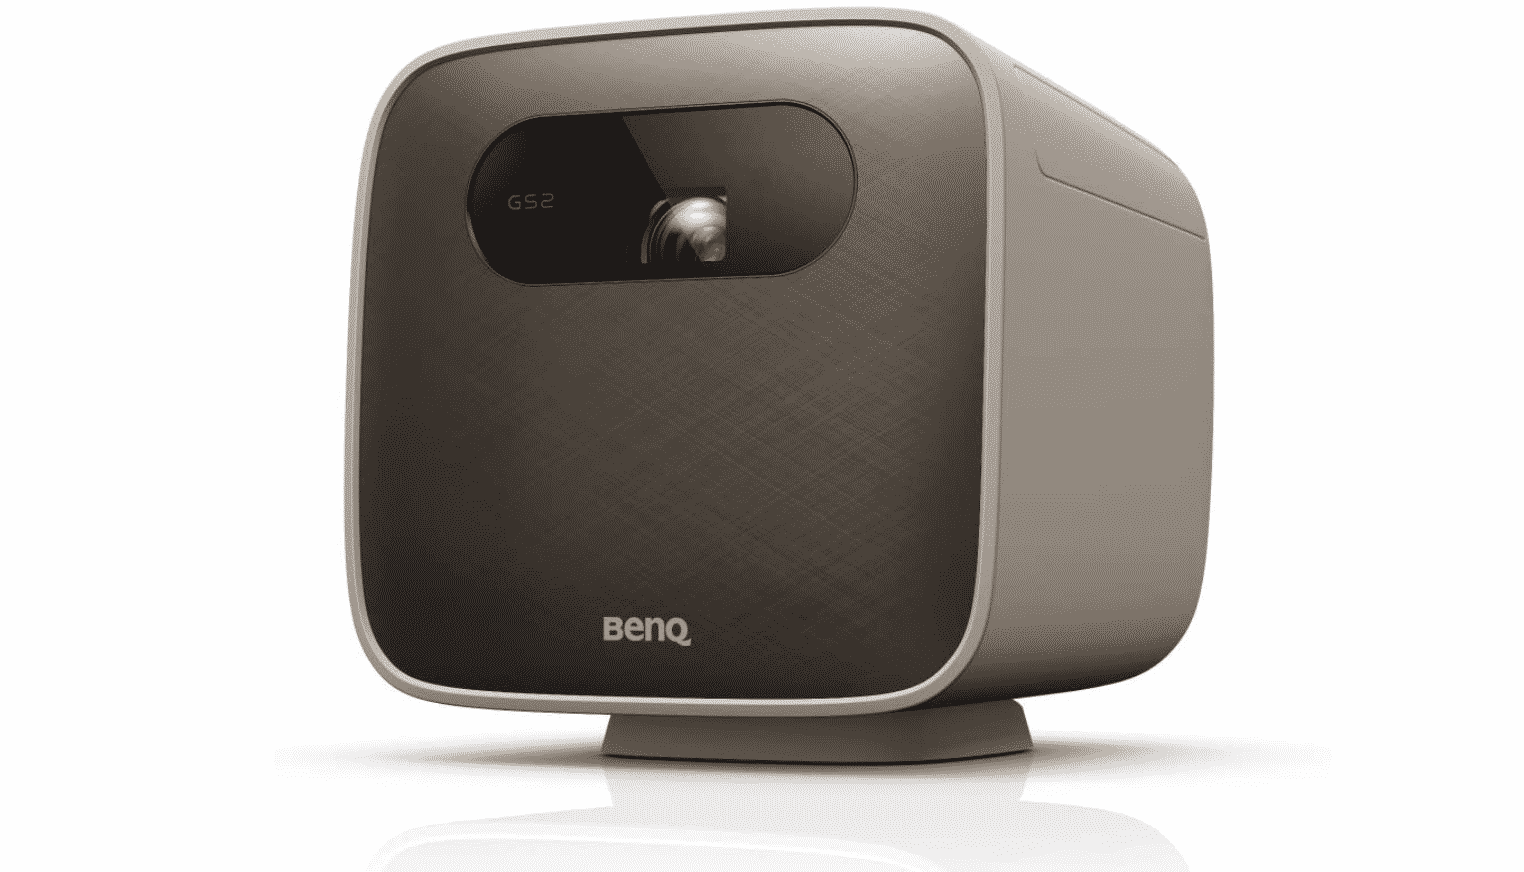 BenQ GS2 Wireless Mini Portable Projector is on Sale at 13% Off